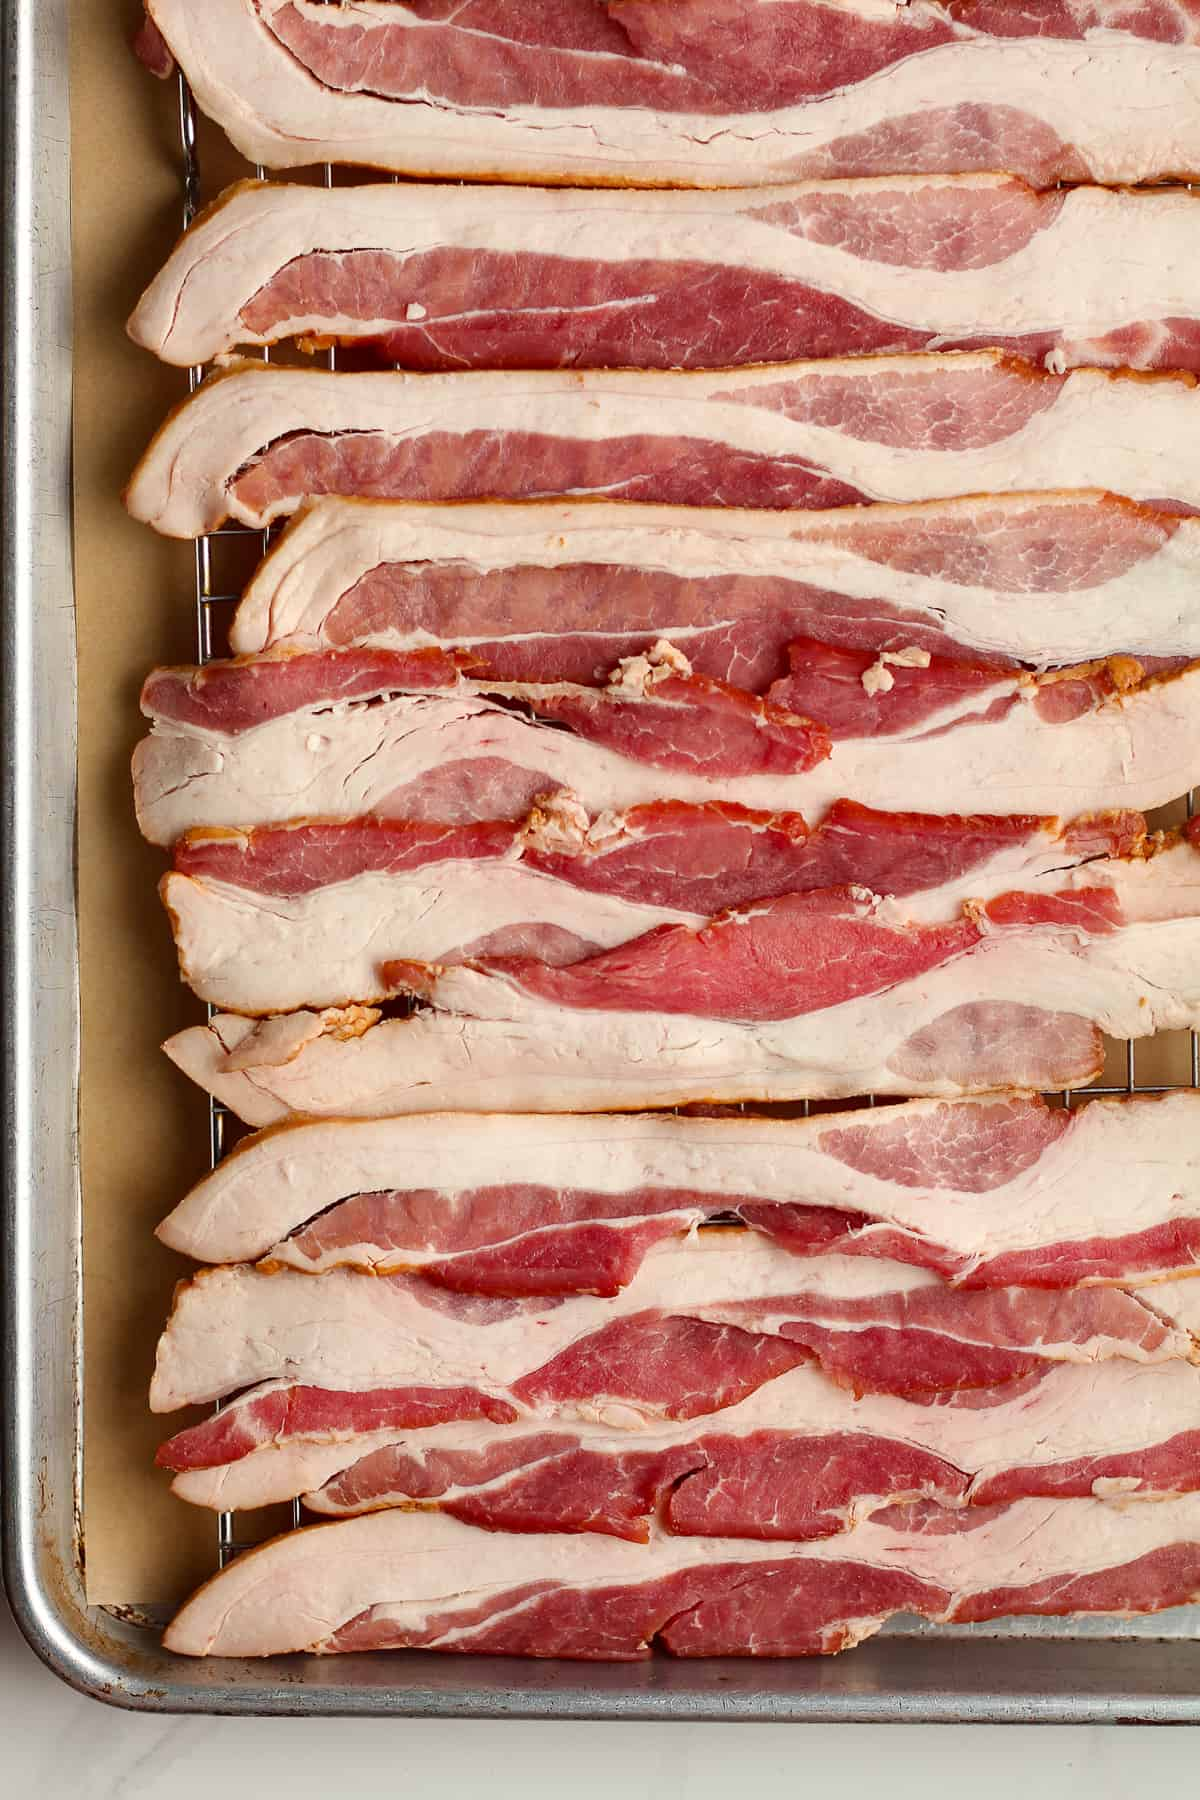 The raw bacon.